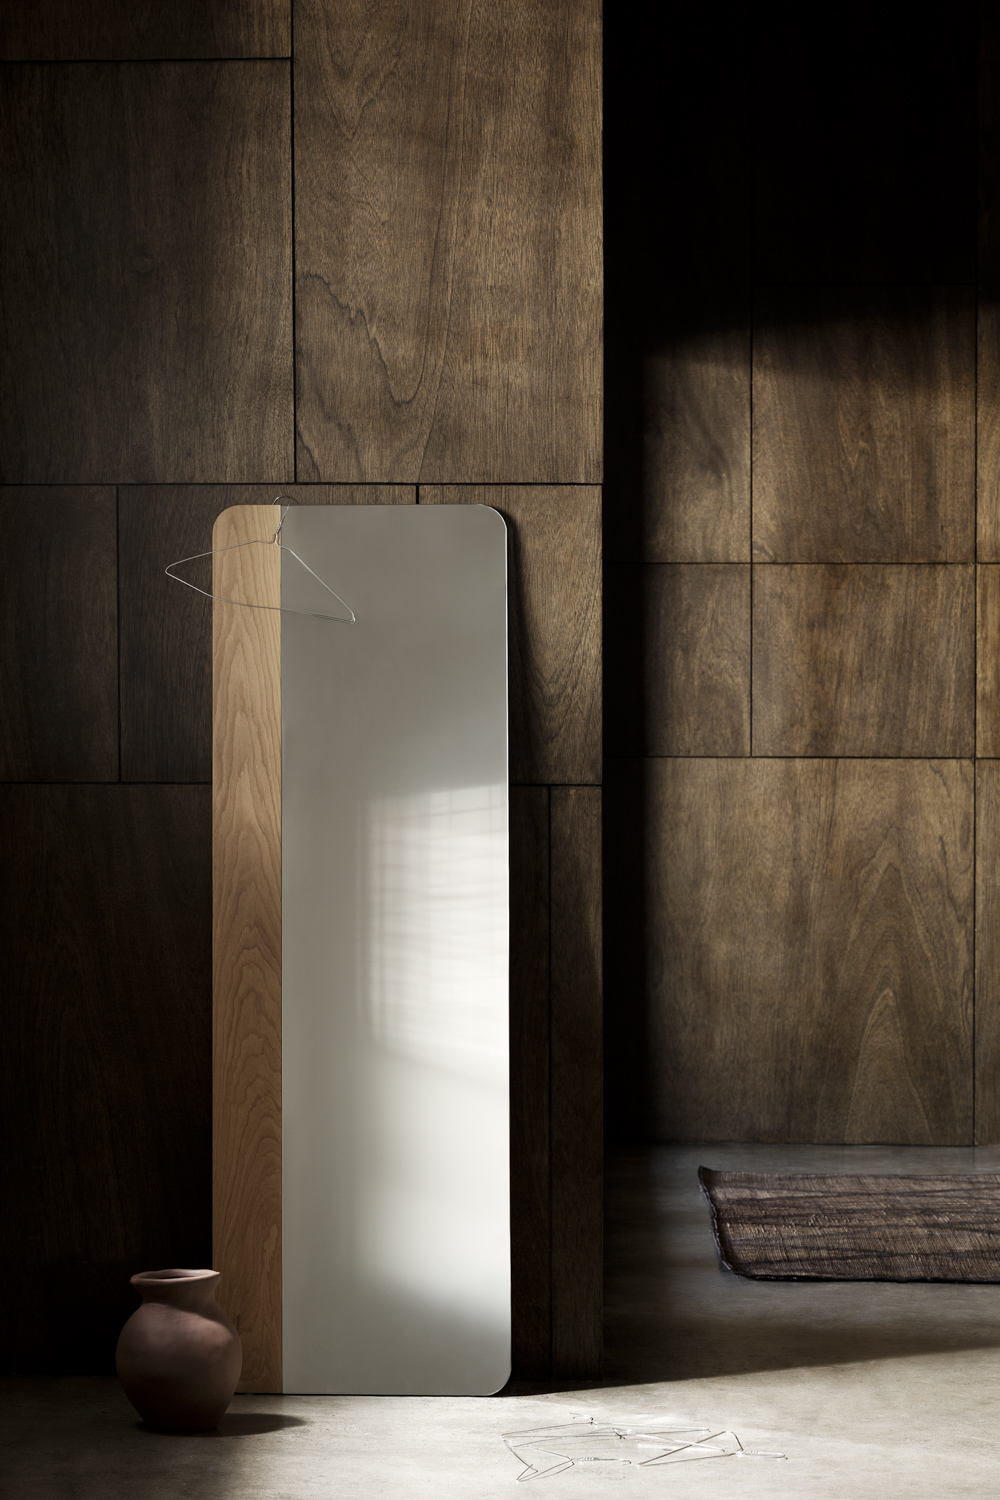 Gallery Of Narcisse Mirror By Anaca Studio Local Australian Furniture Design Collingwood, Melbourne Image 1